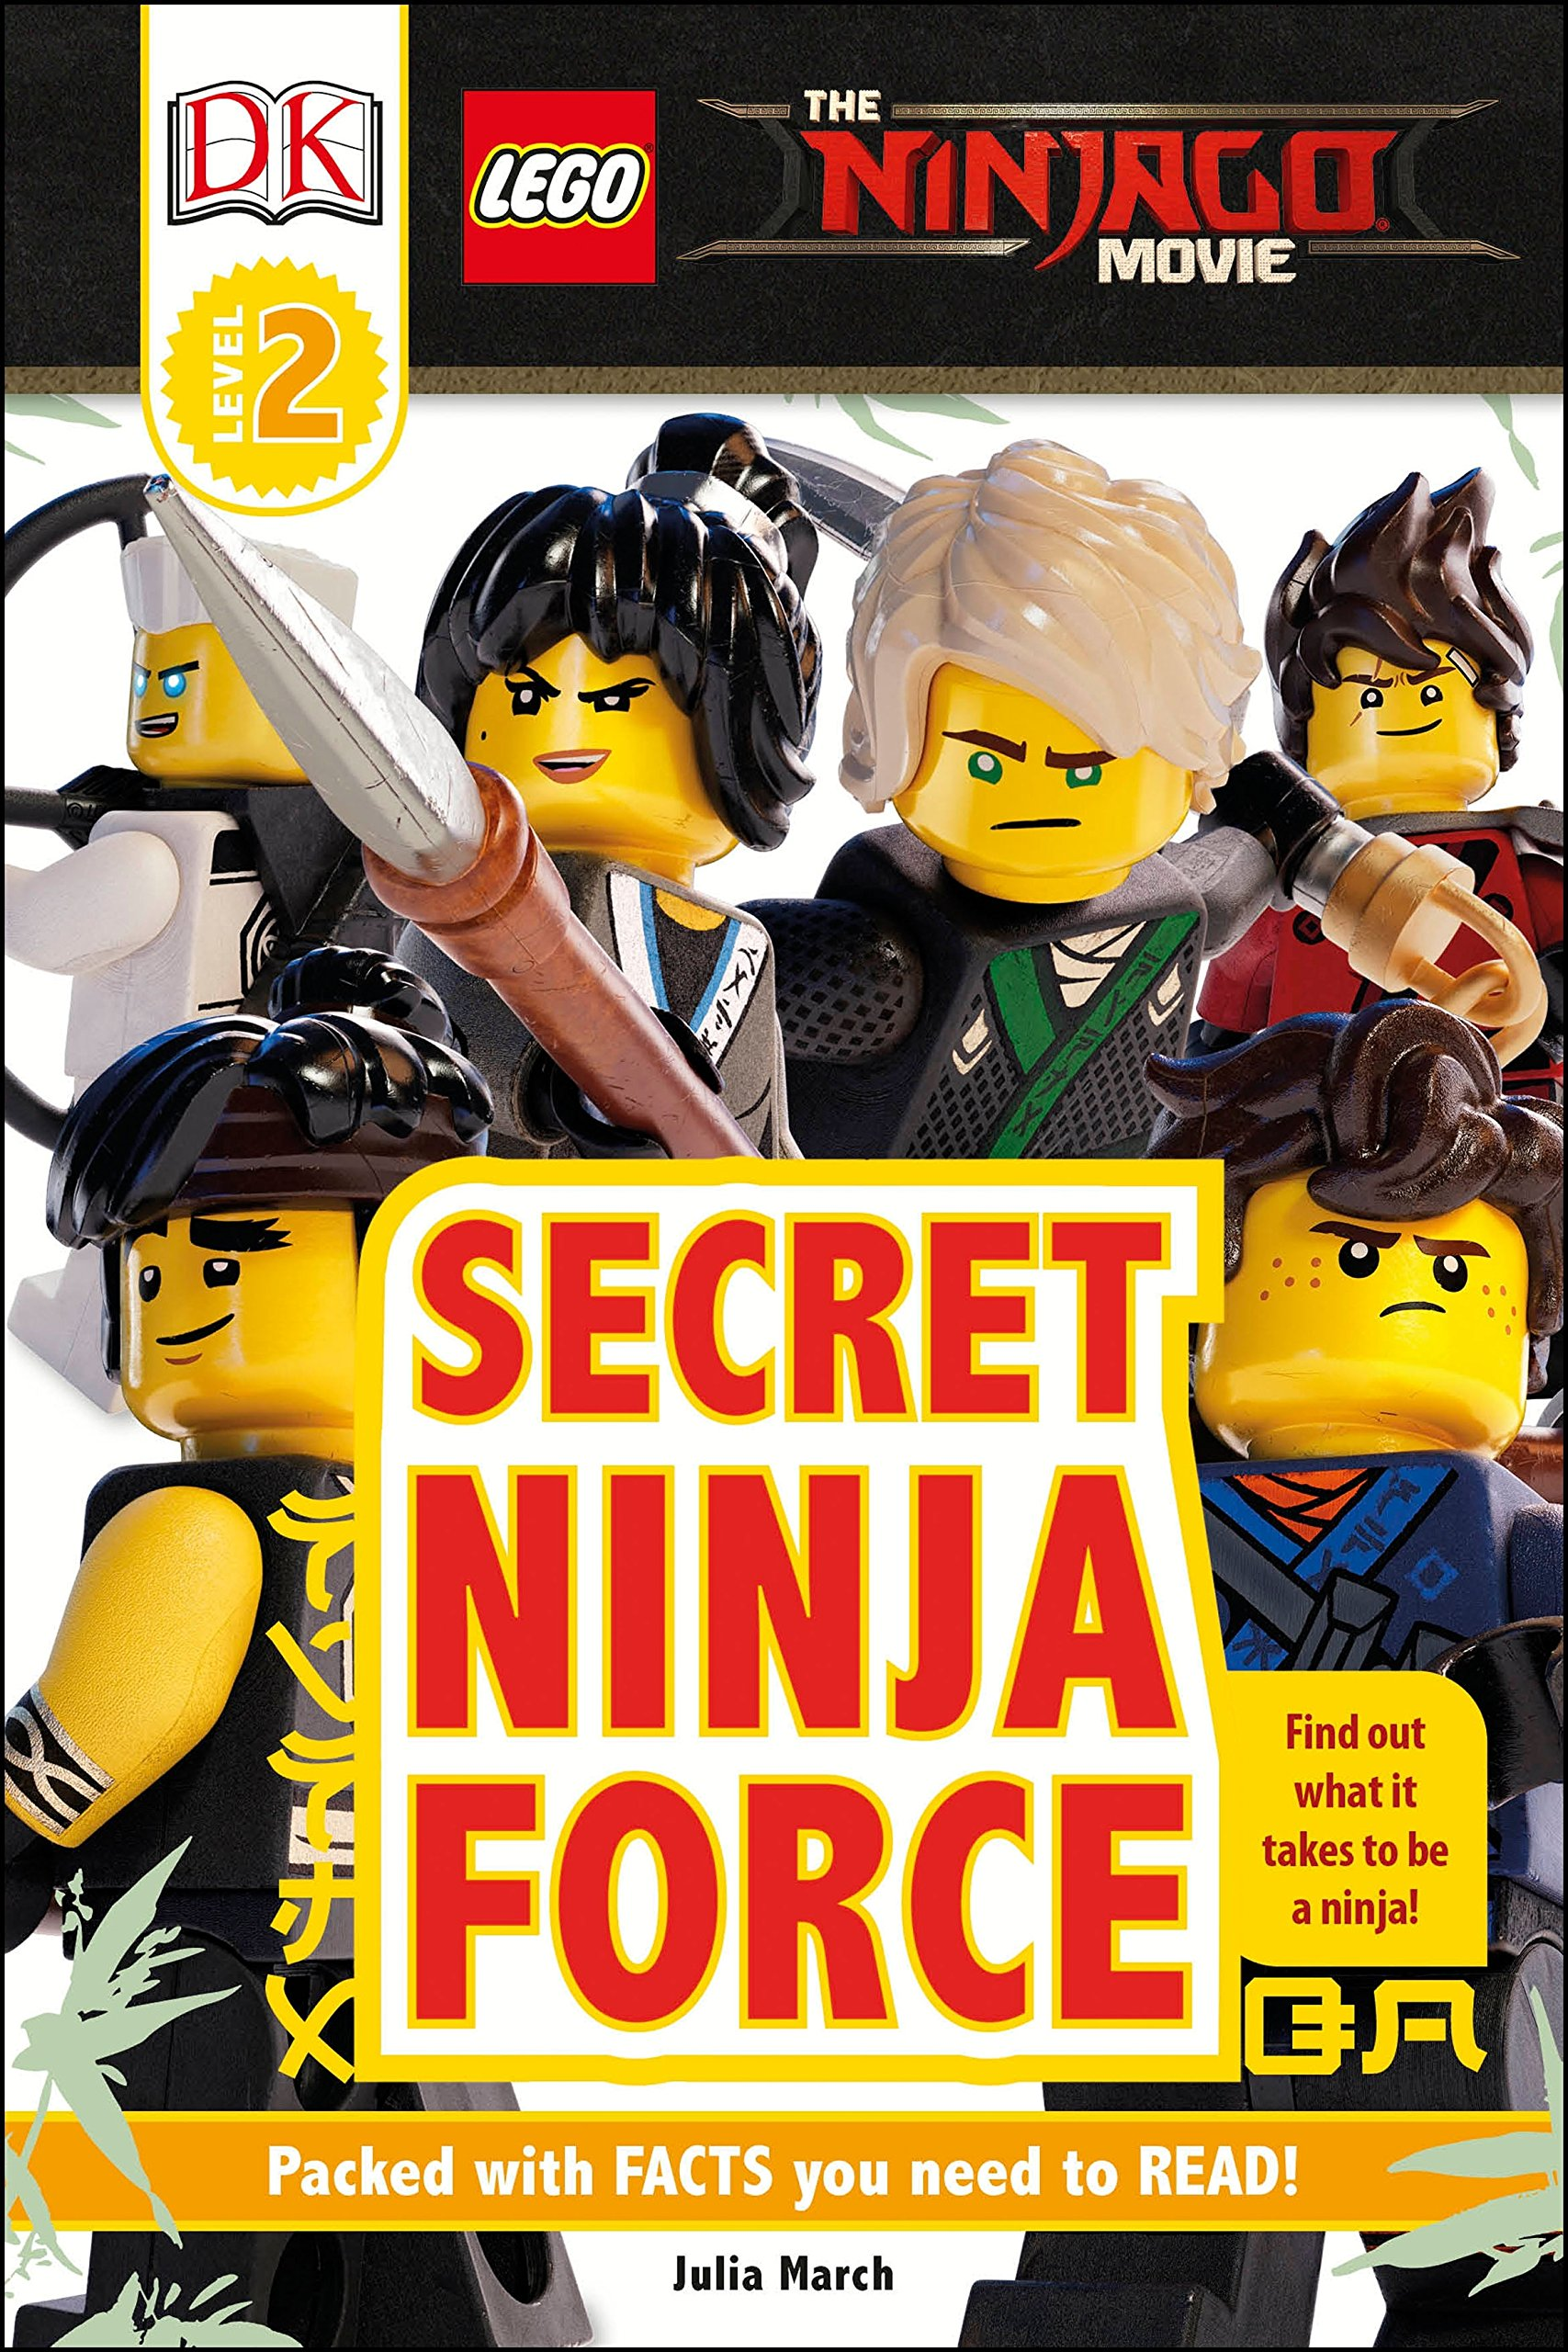 DK Reader LEGO (R) NINJAGO (R) Movie (TM) Secret Ninja Force ...